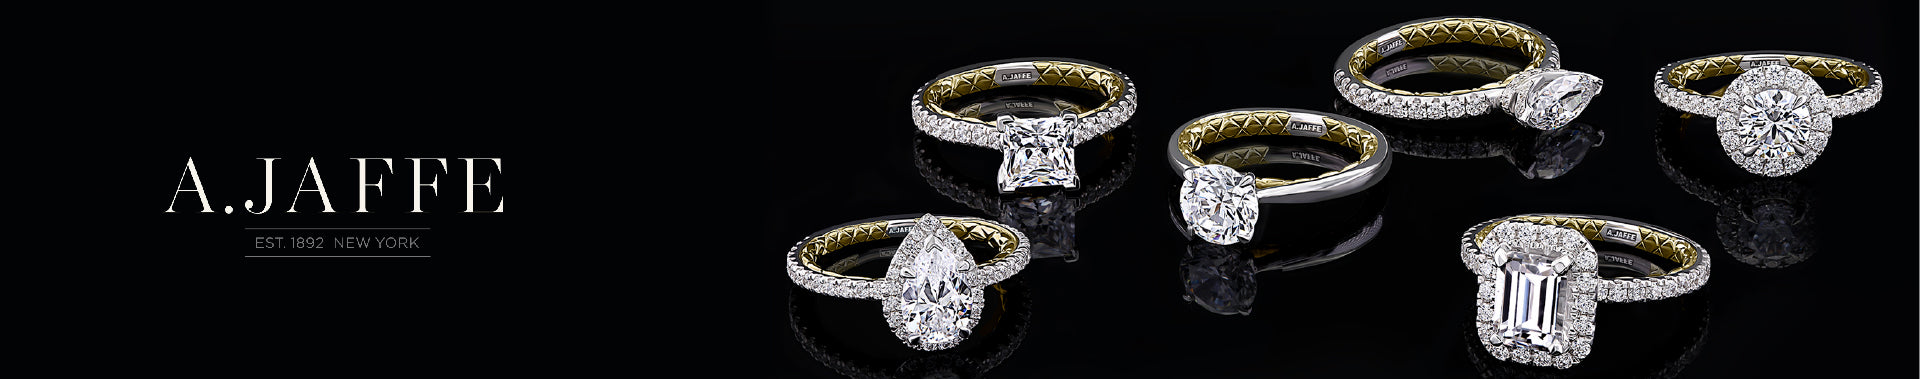 A.Jaffe Engagement rings collection